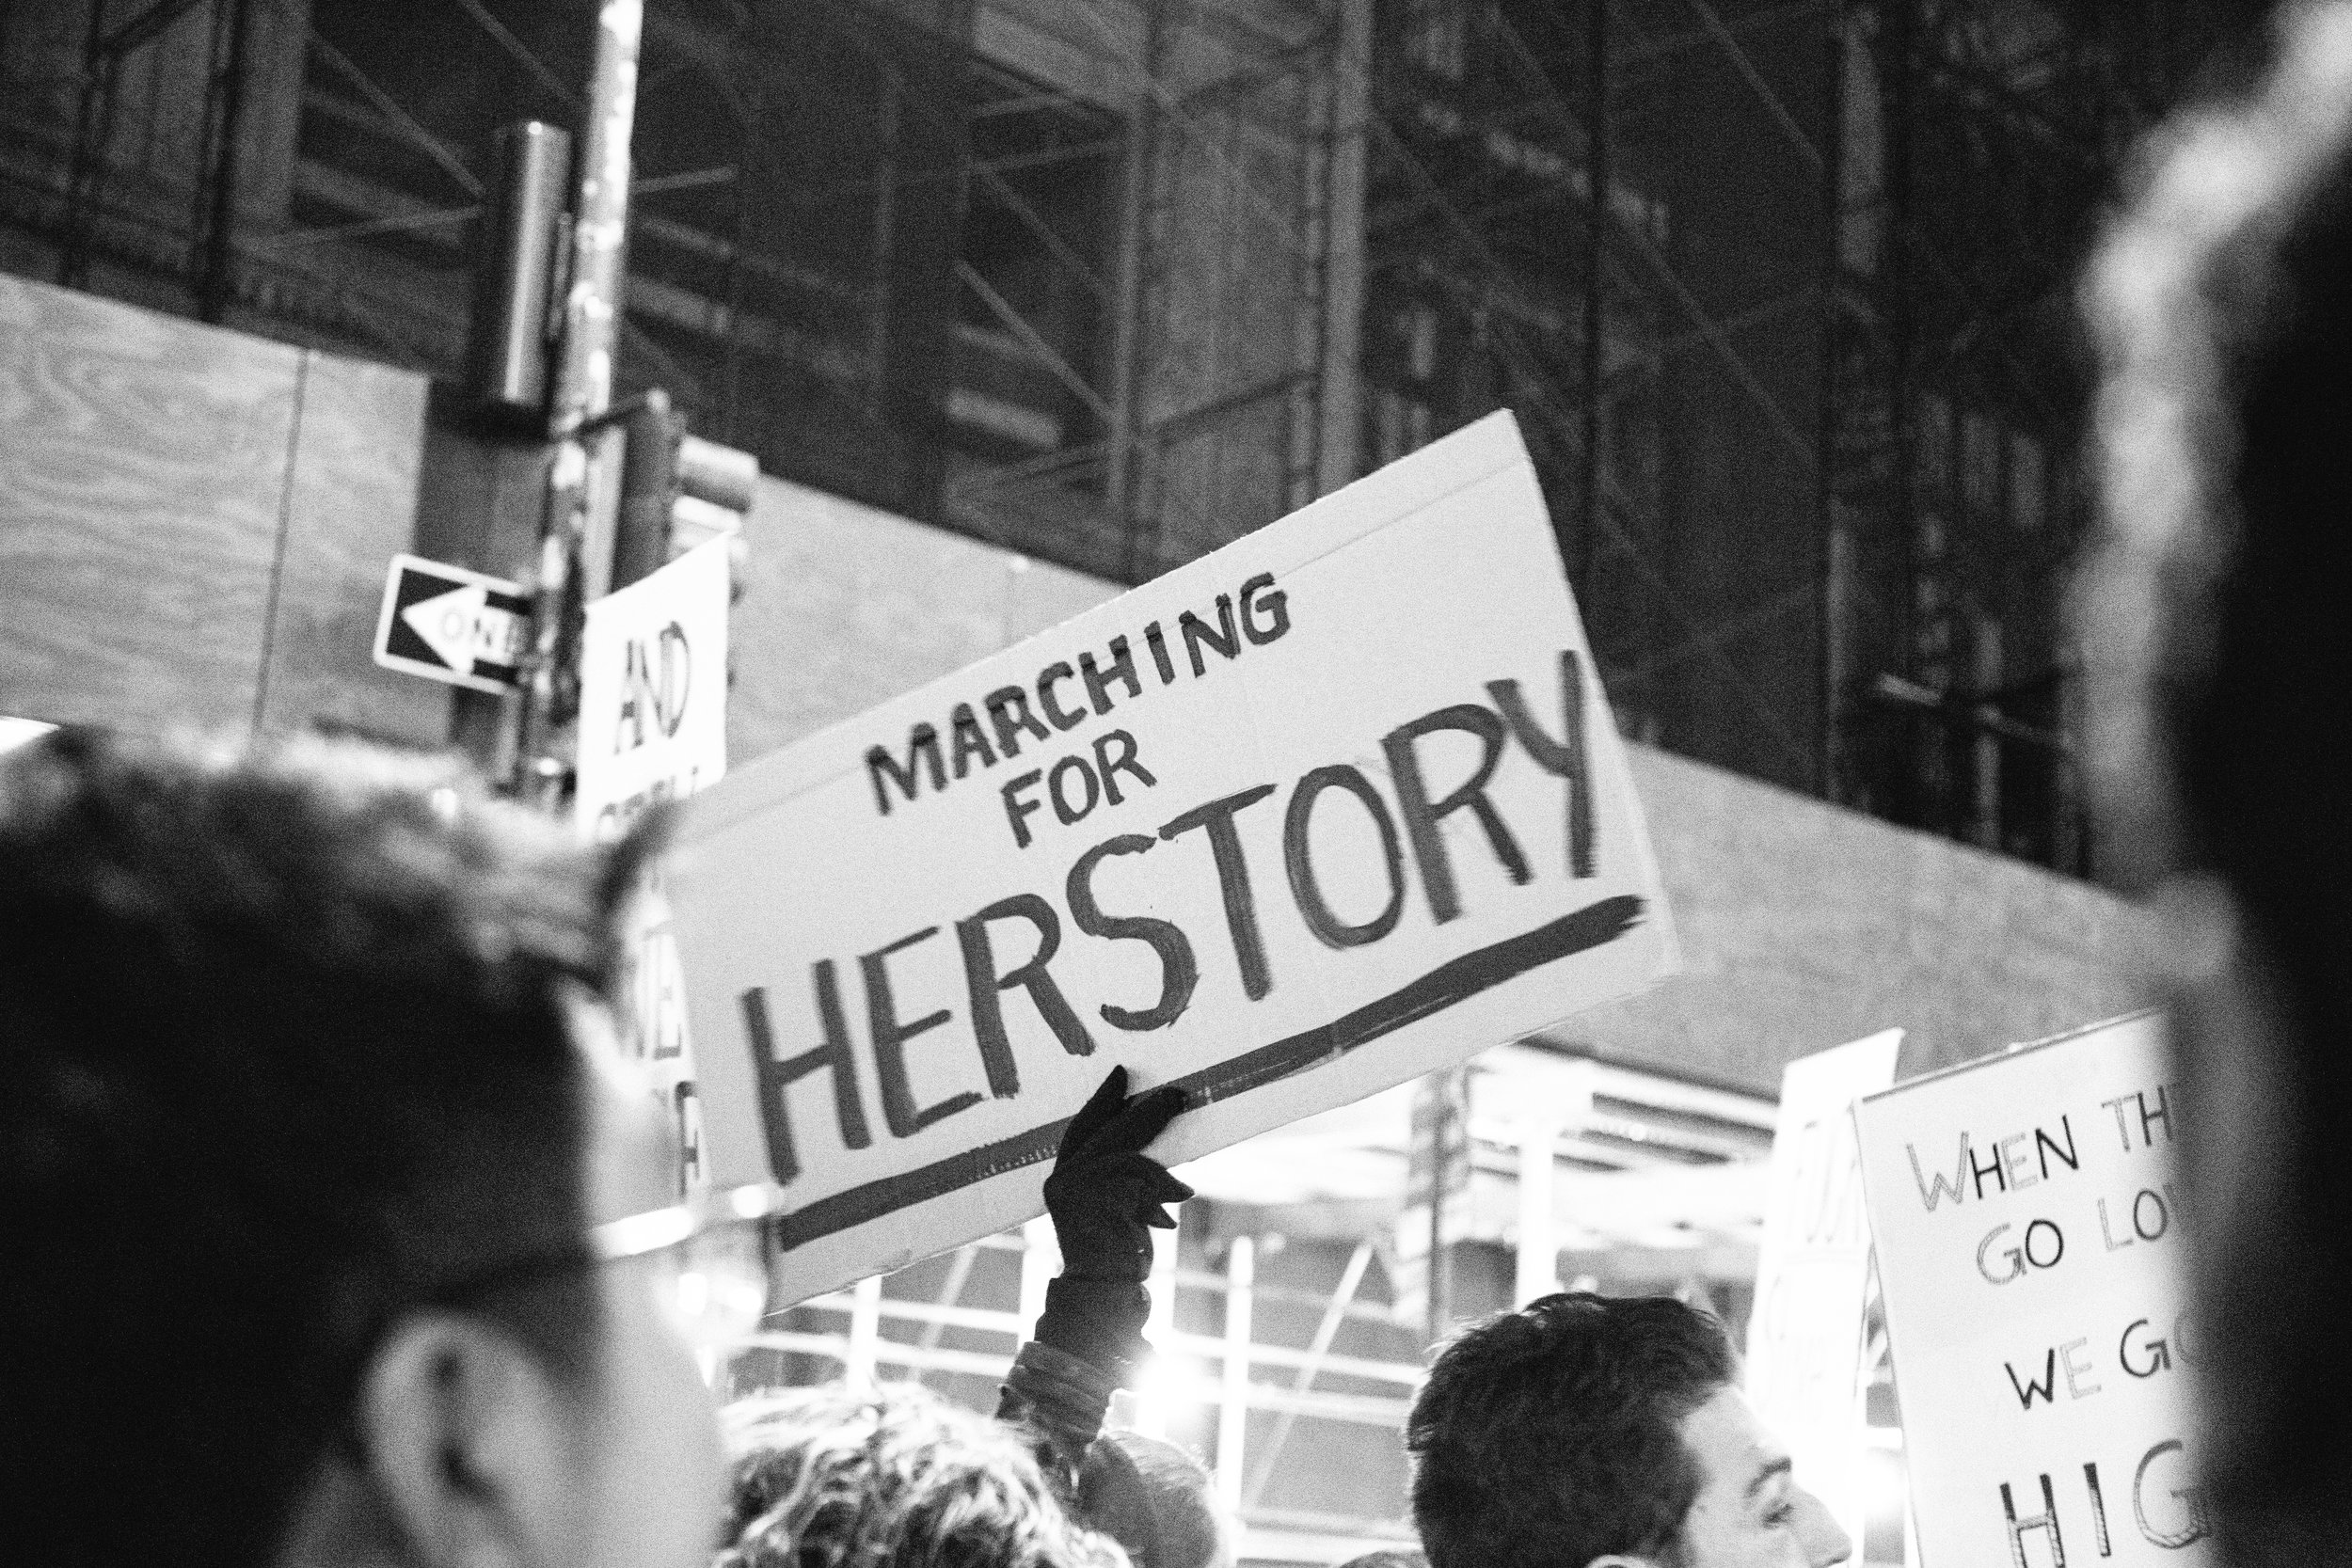 women's march on washington nyc protest signs-179.jpg